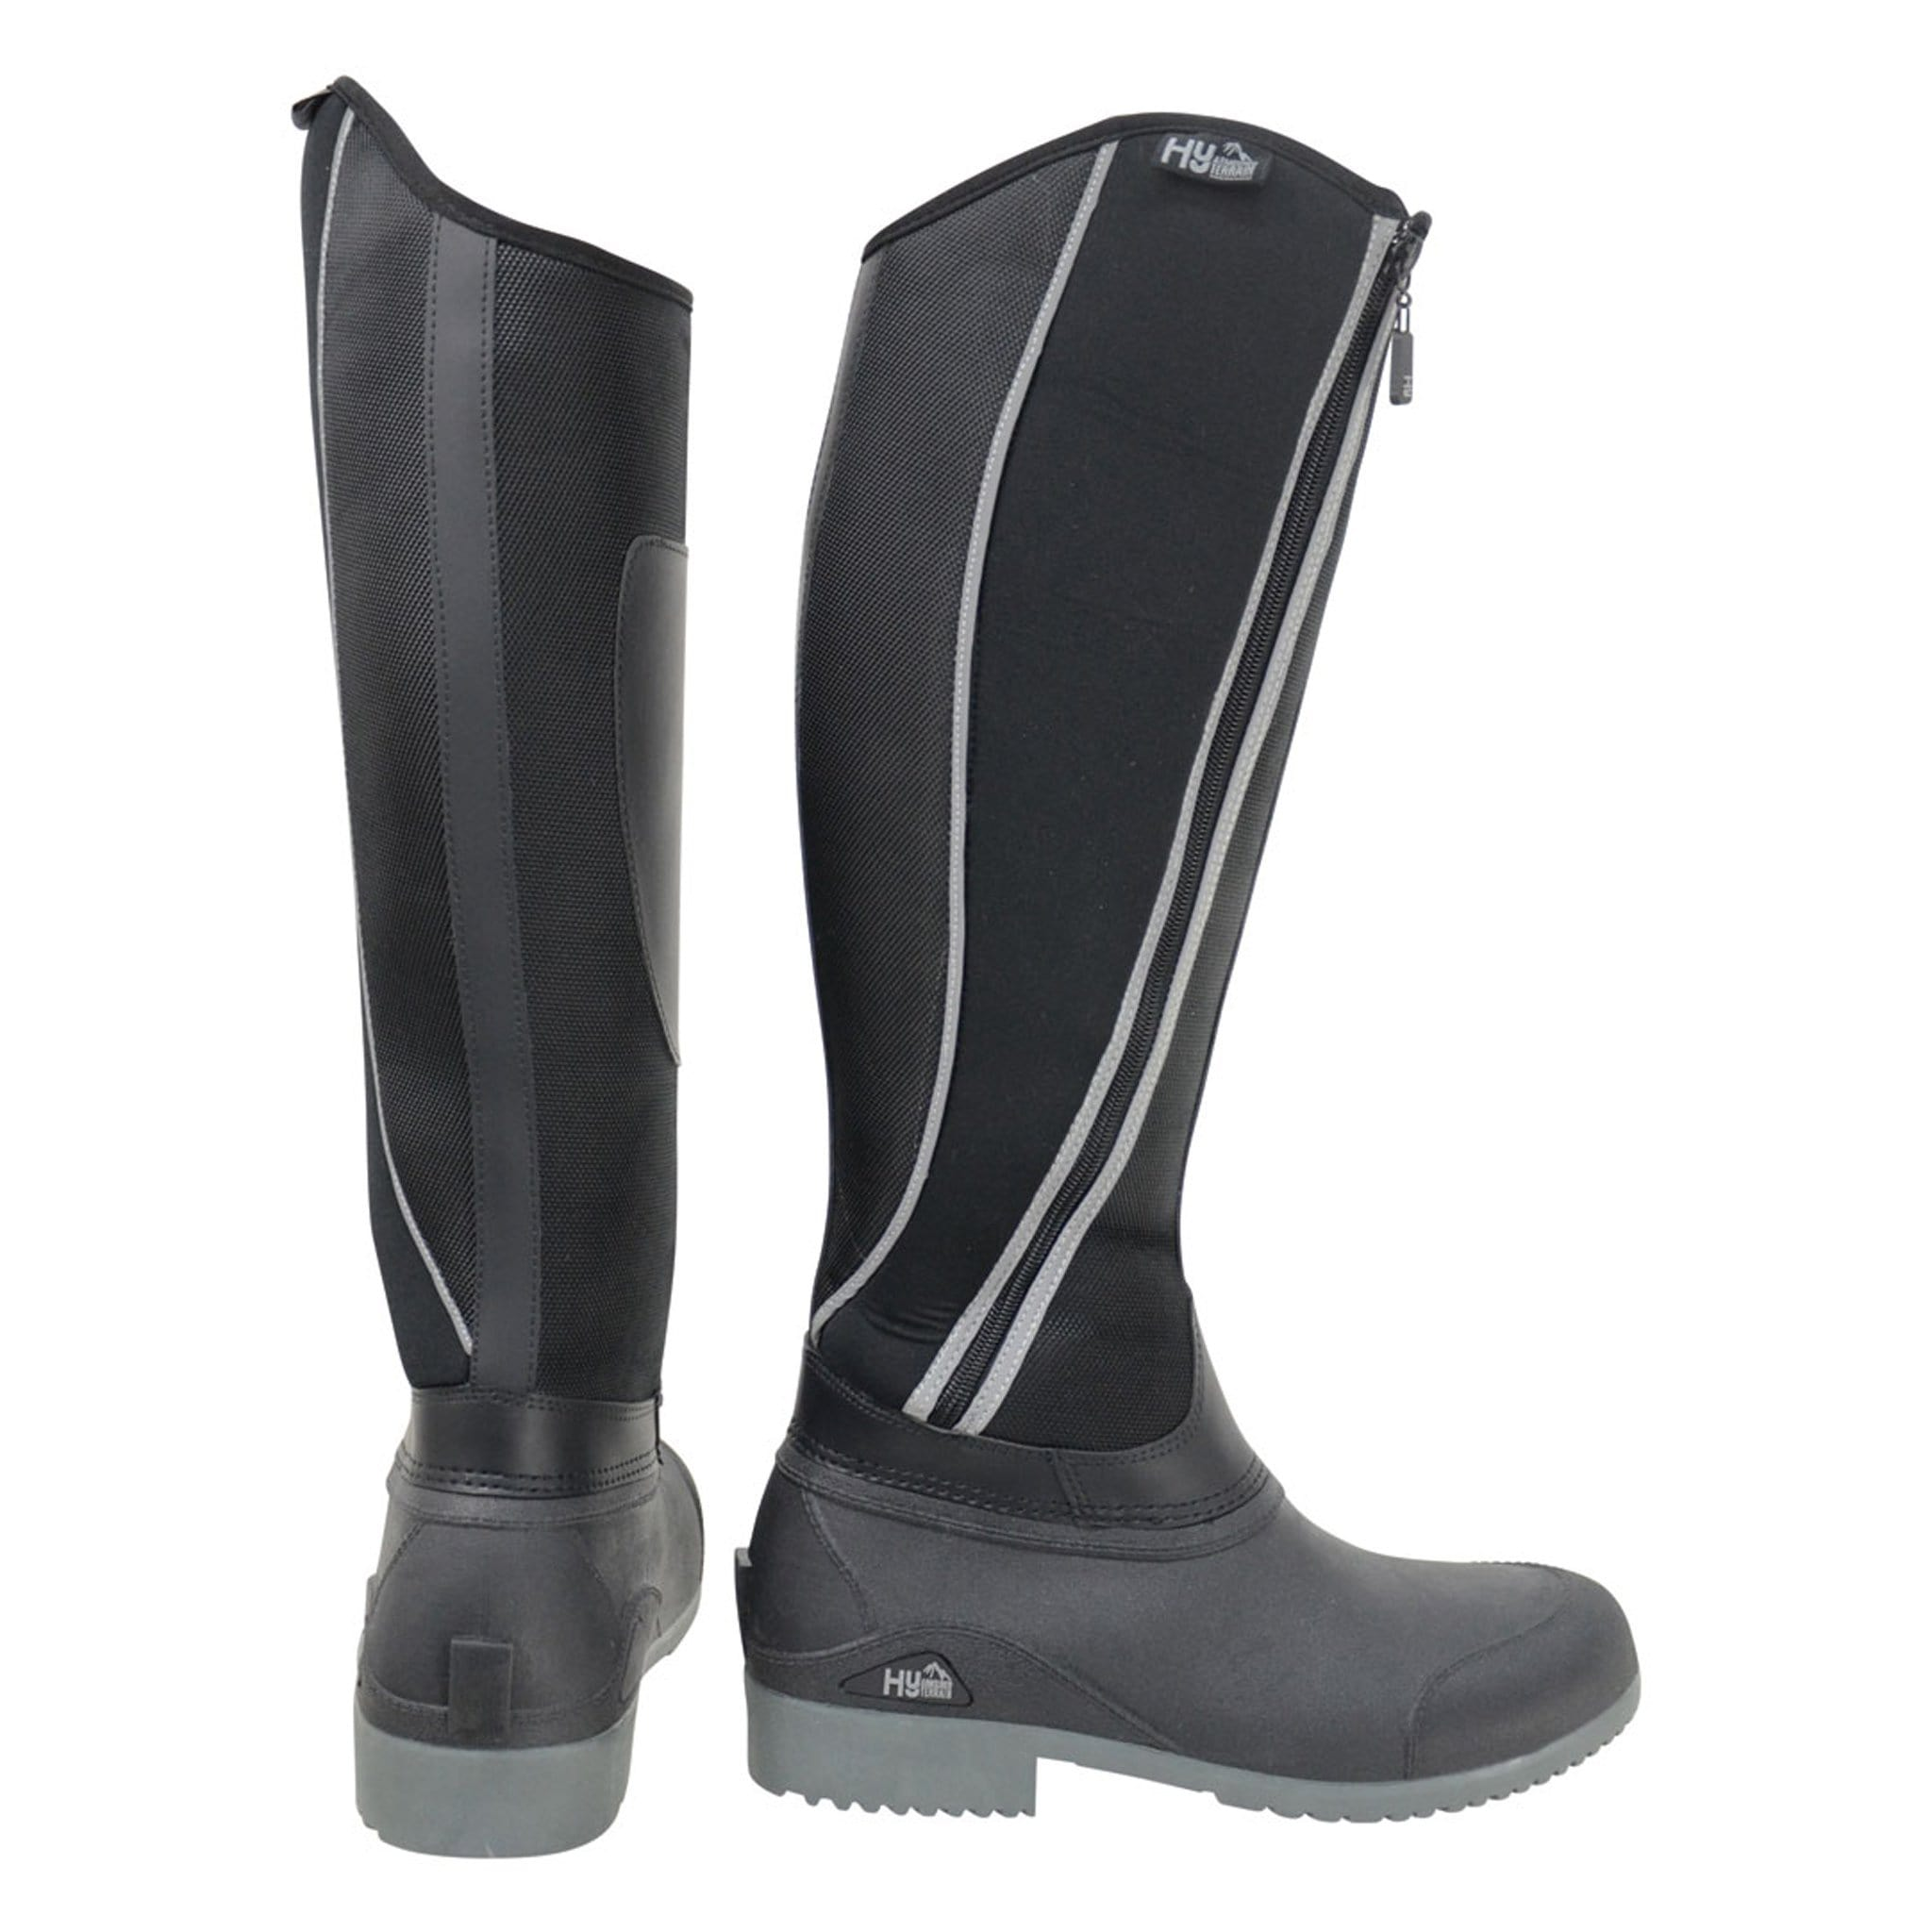 HyLAND Antarctica Neoprene Tall Winter Boots 20236